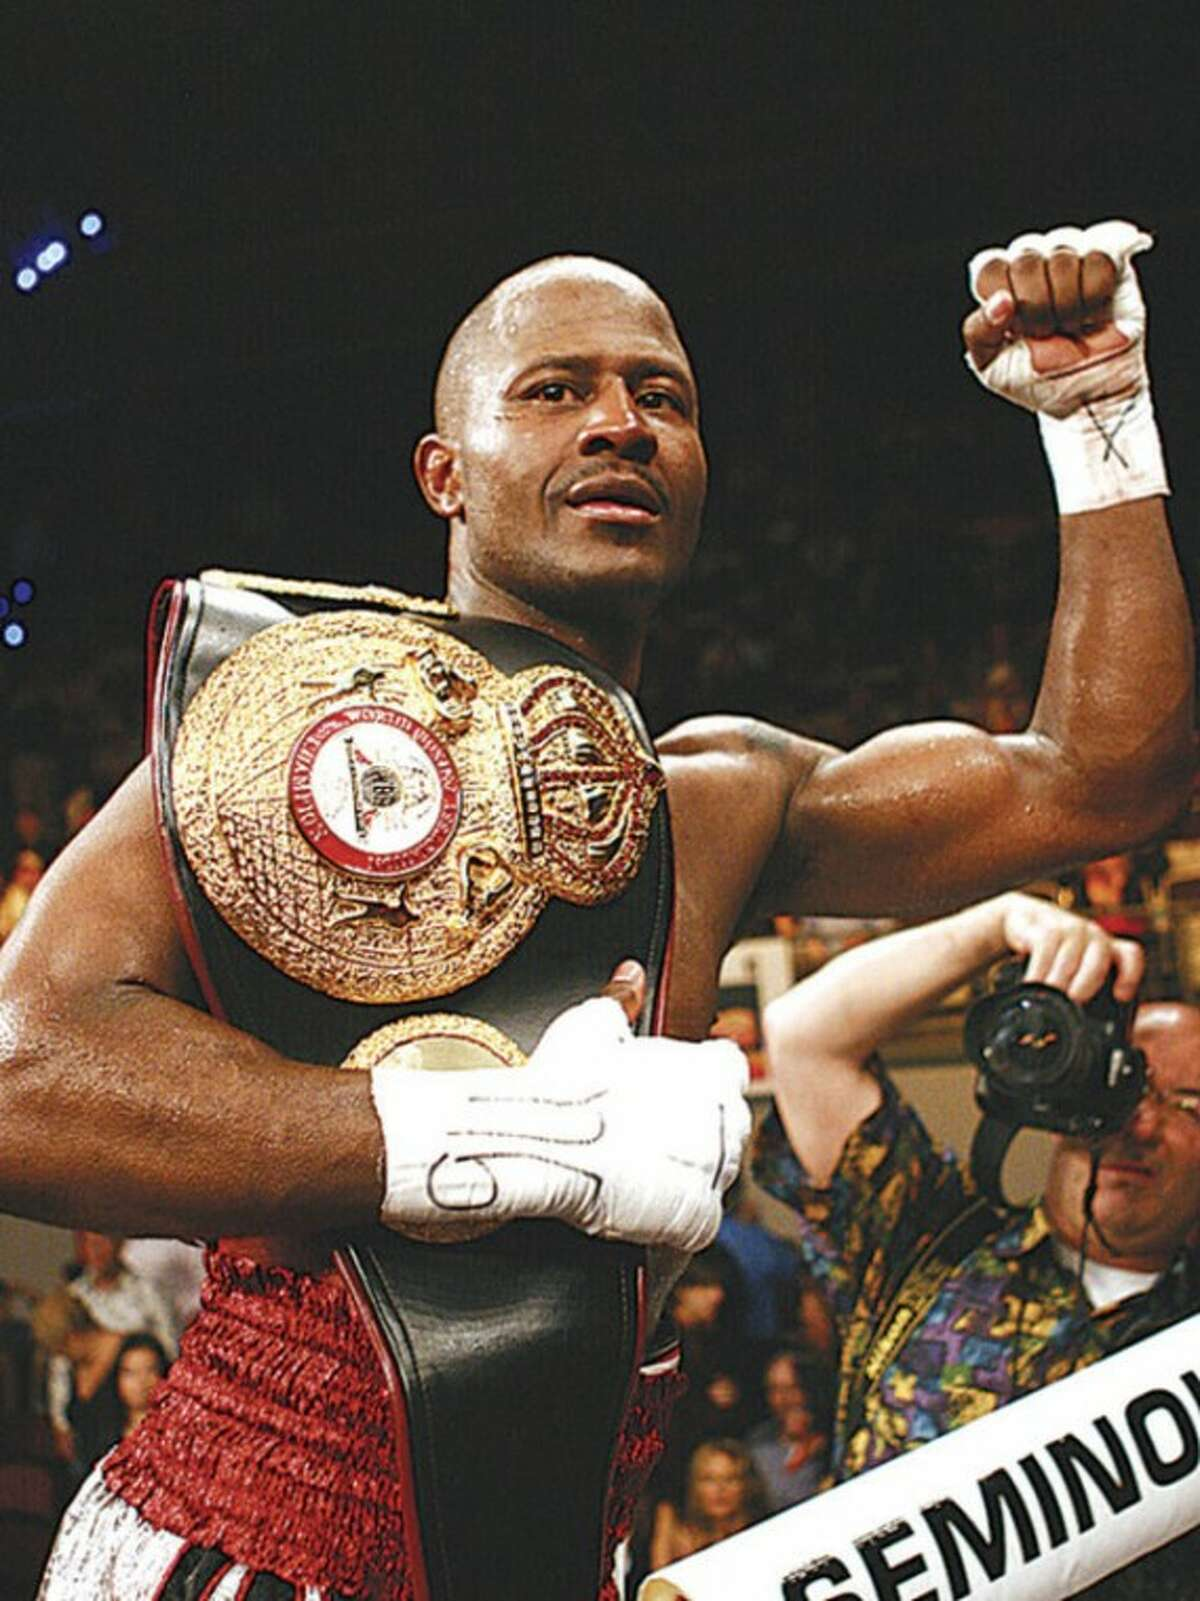 Hour file photo Travis Simms of Norwalk was victorious in winning one World Championship in his career, which has led him to the Connecticut Boxing Hall of Fame.